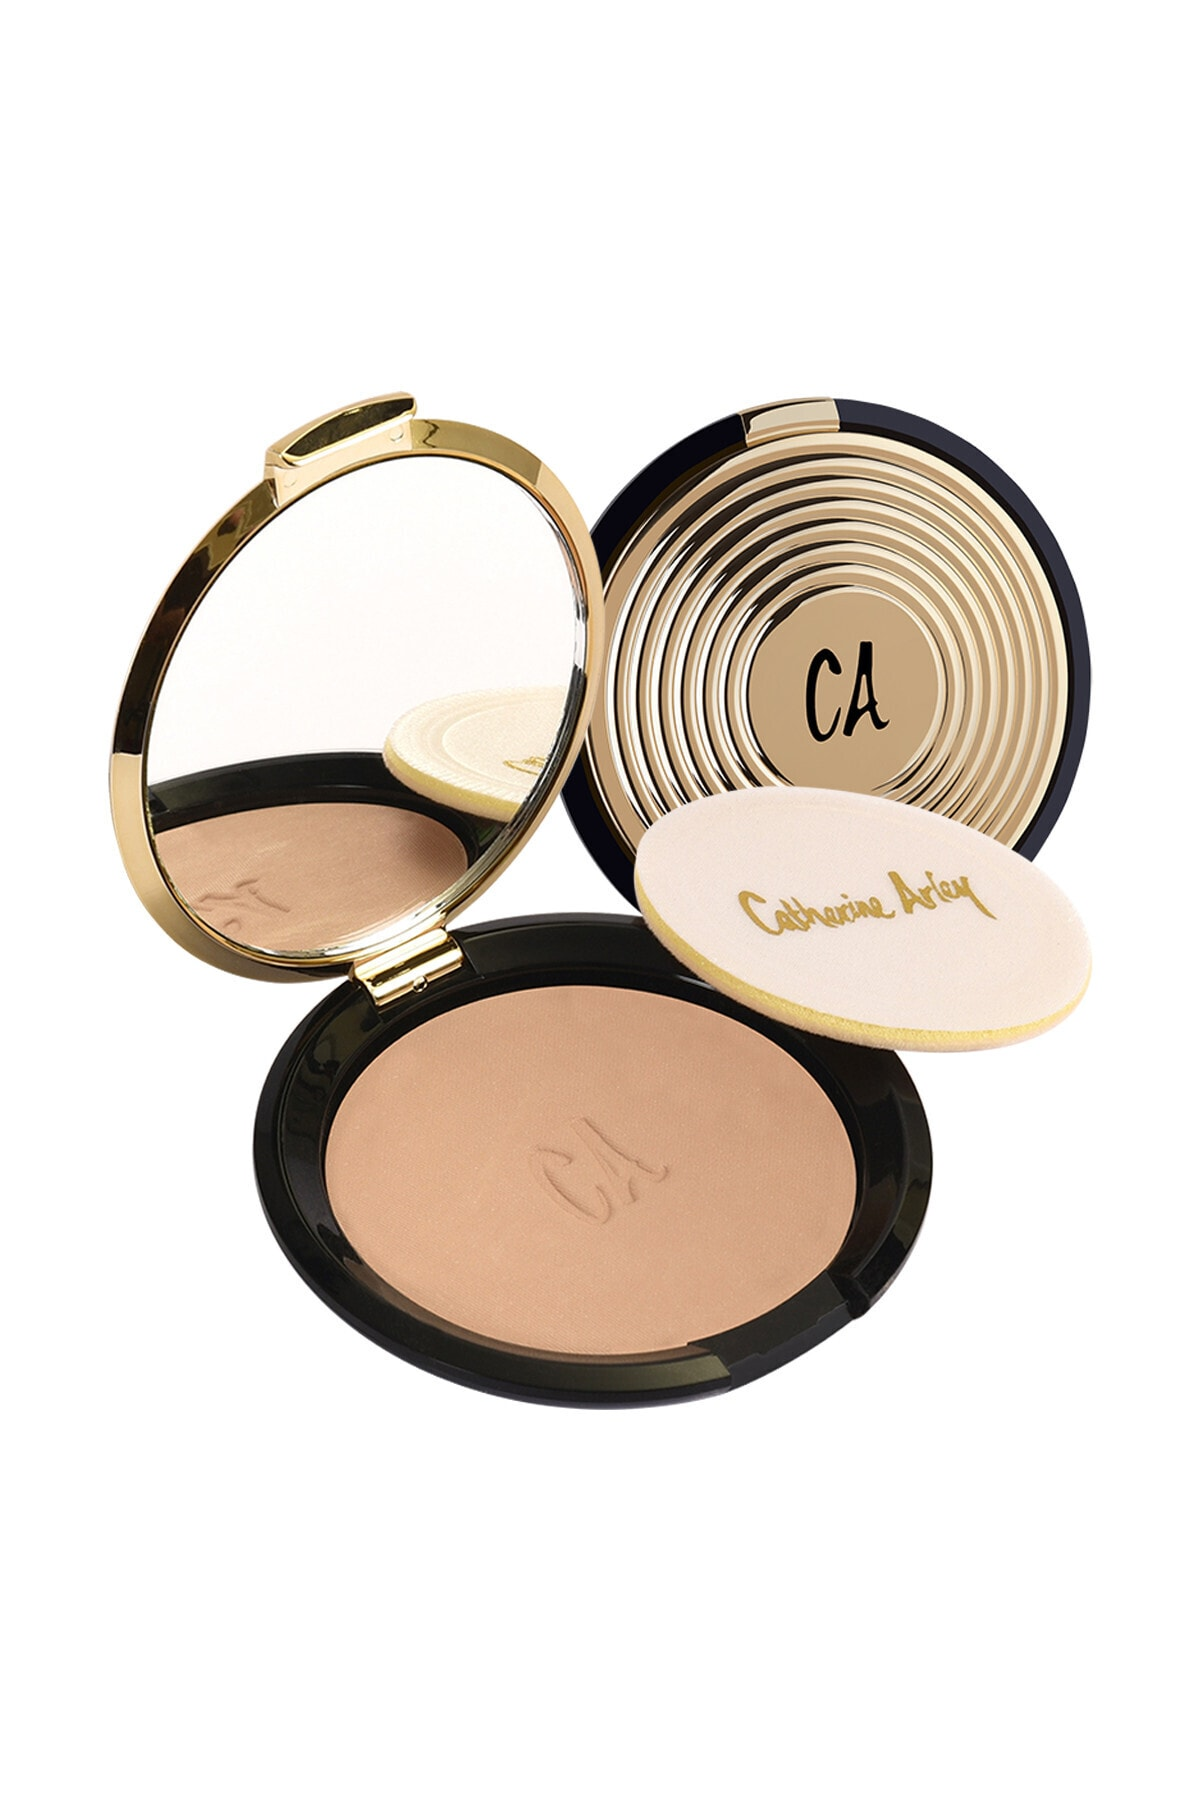 Catherine Arley Gold Pudra - Gold Compact Powder 103 8691167474845 1